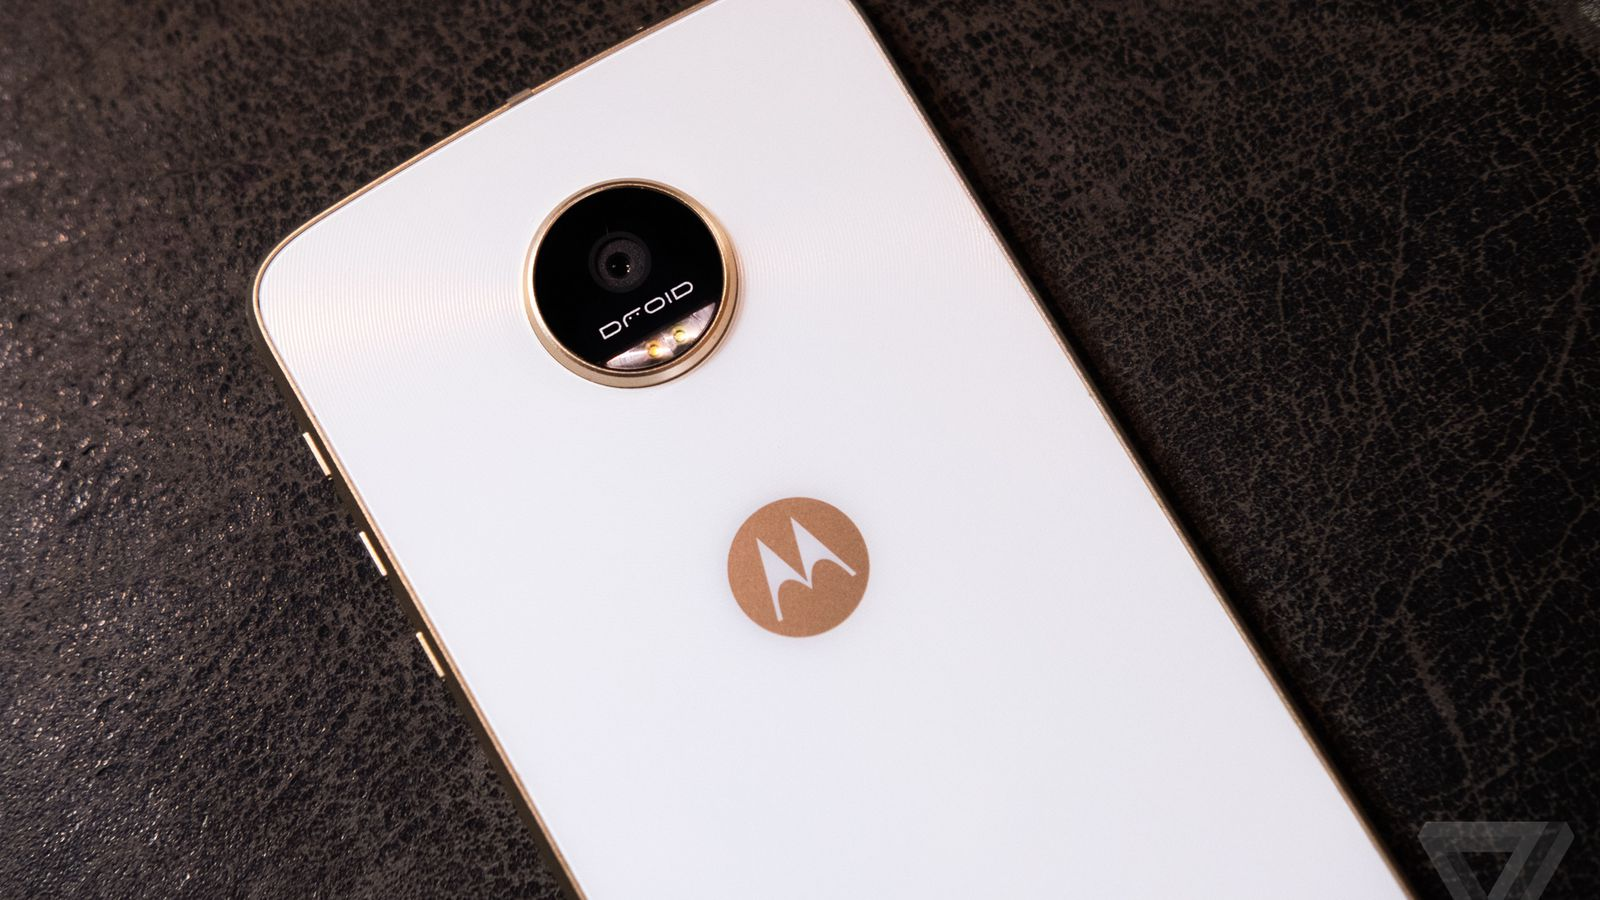 Moto likely to release a Tango mod for the Z